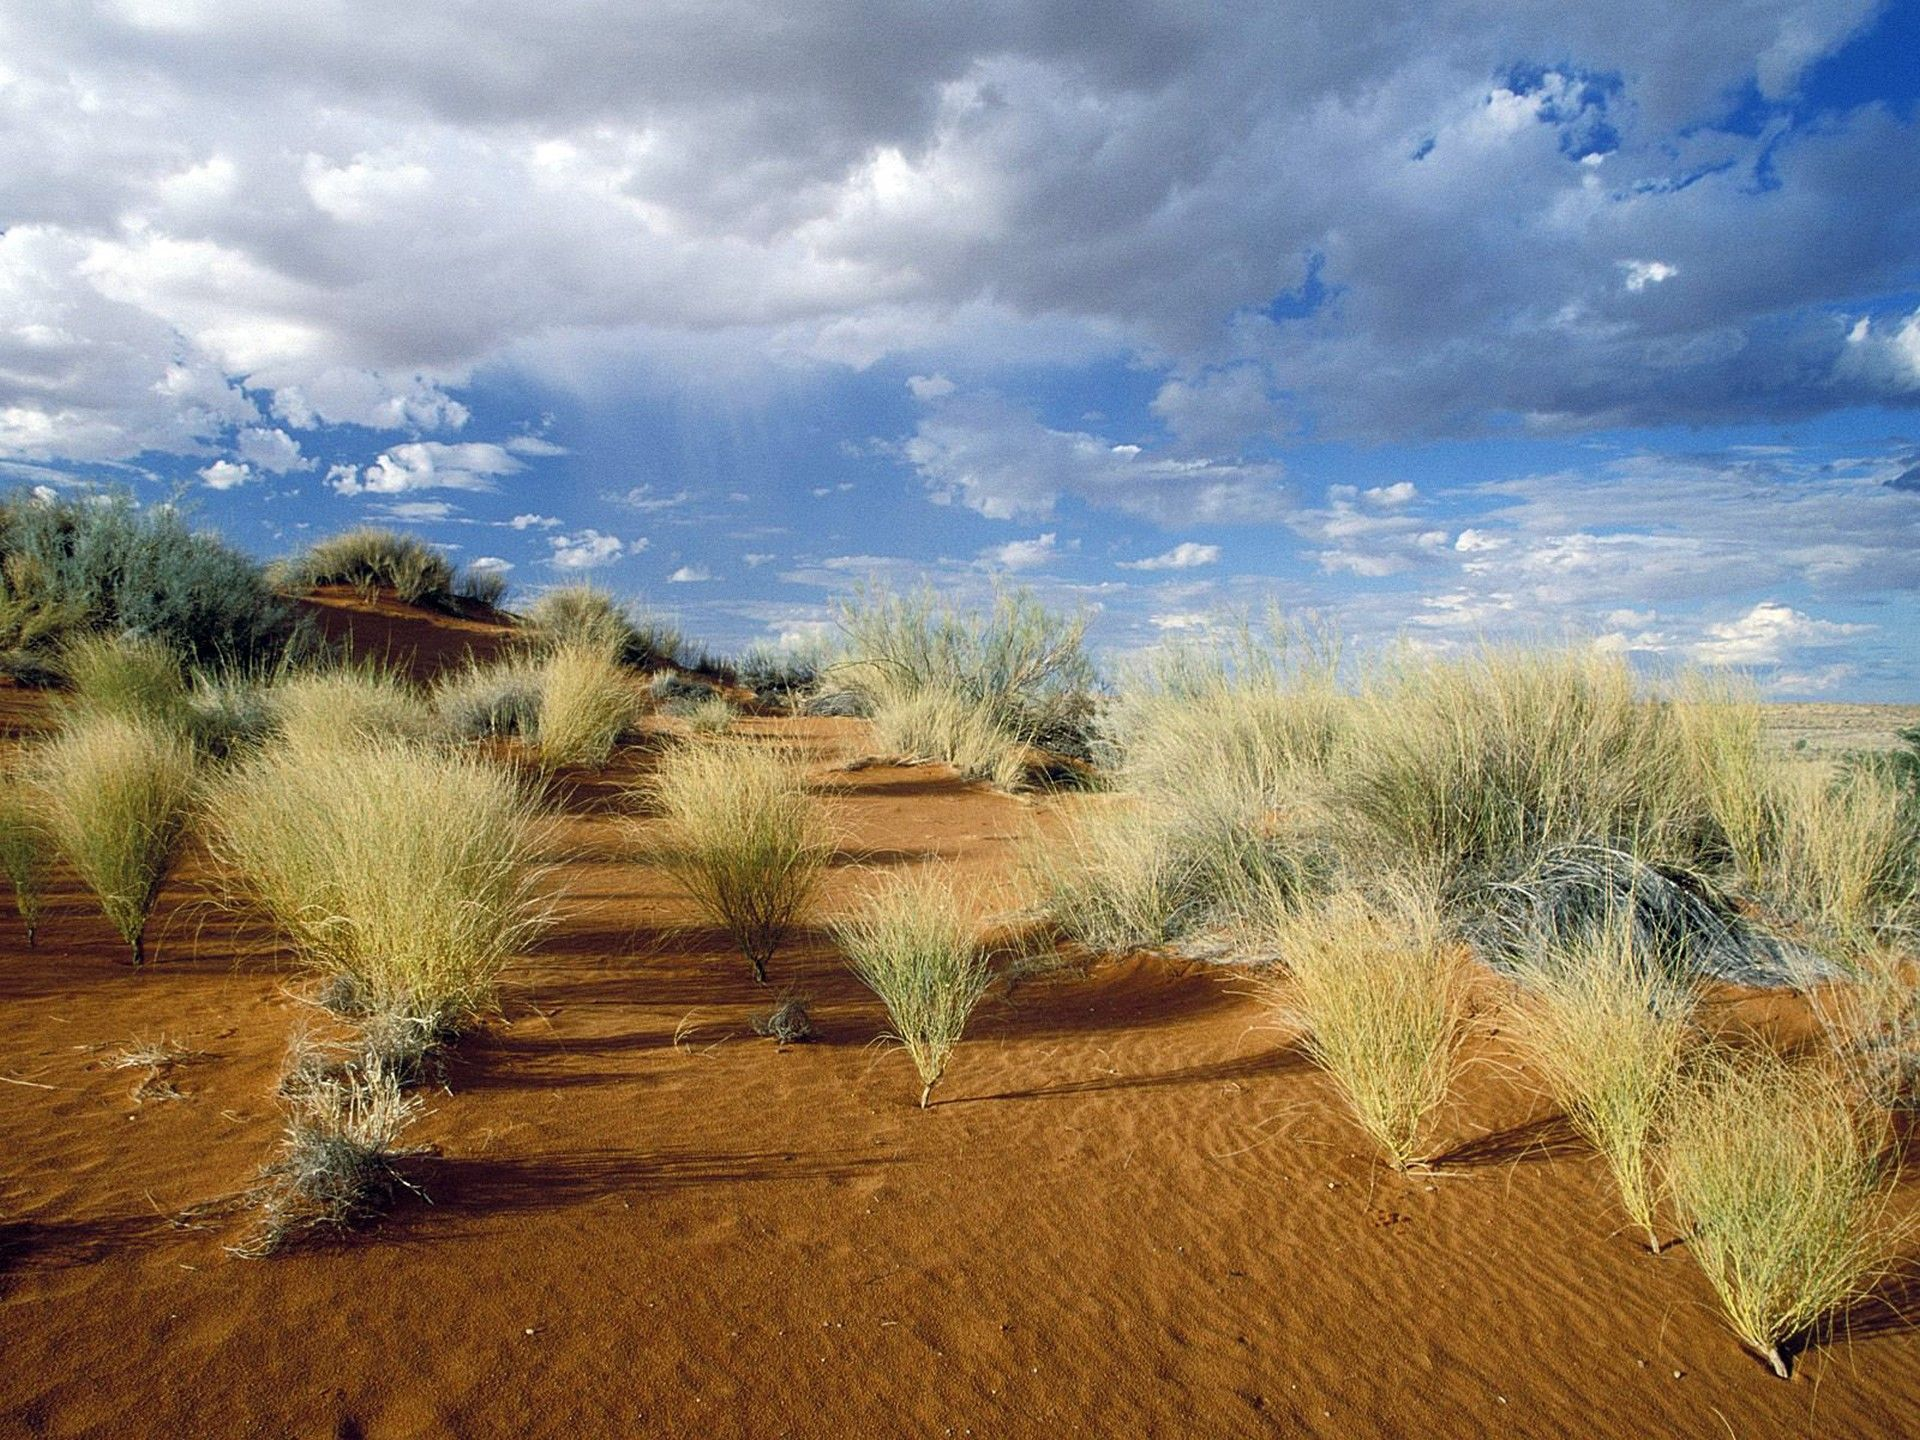 Afrika - Page 13 Kgalagadi_Transfrontier_Park_South_Africa